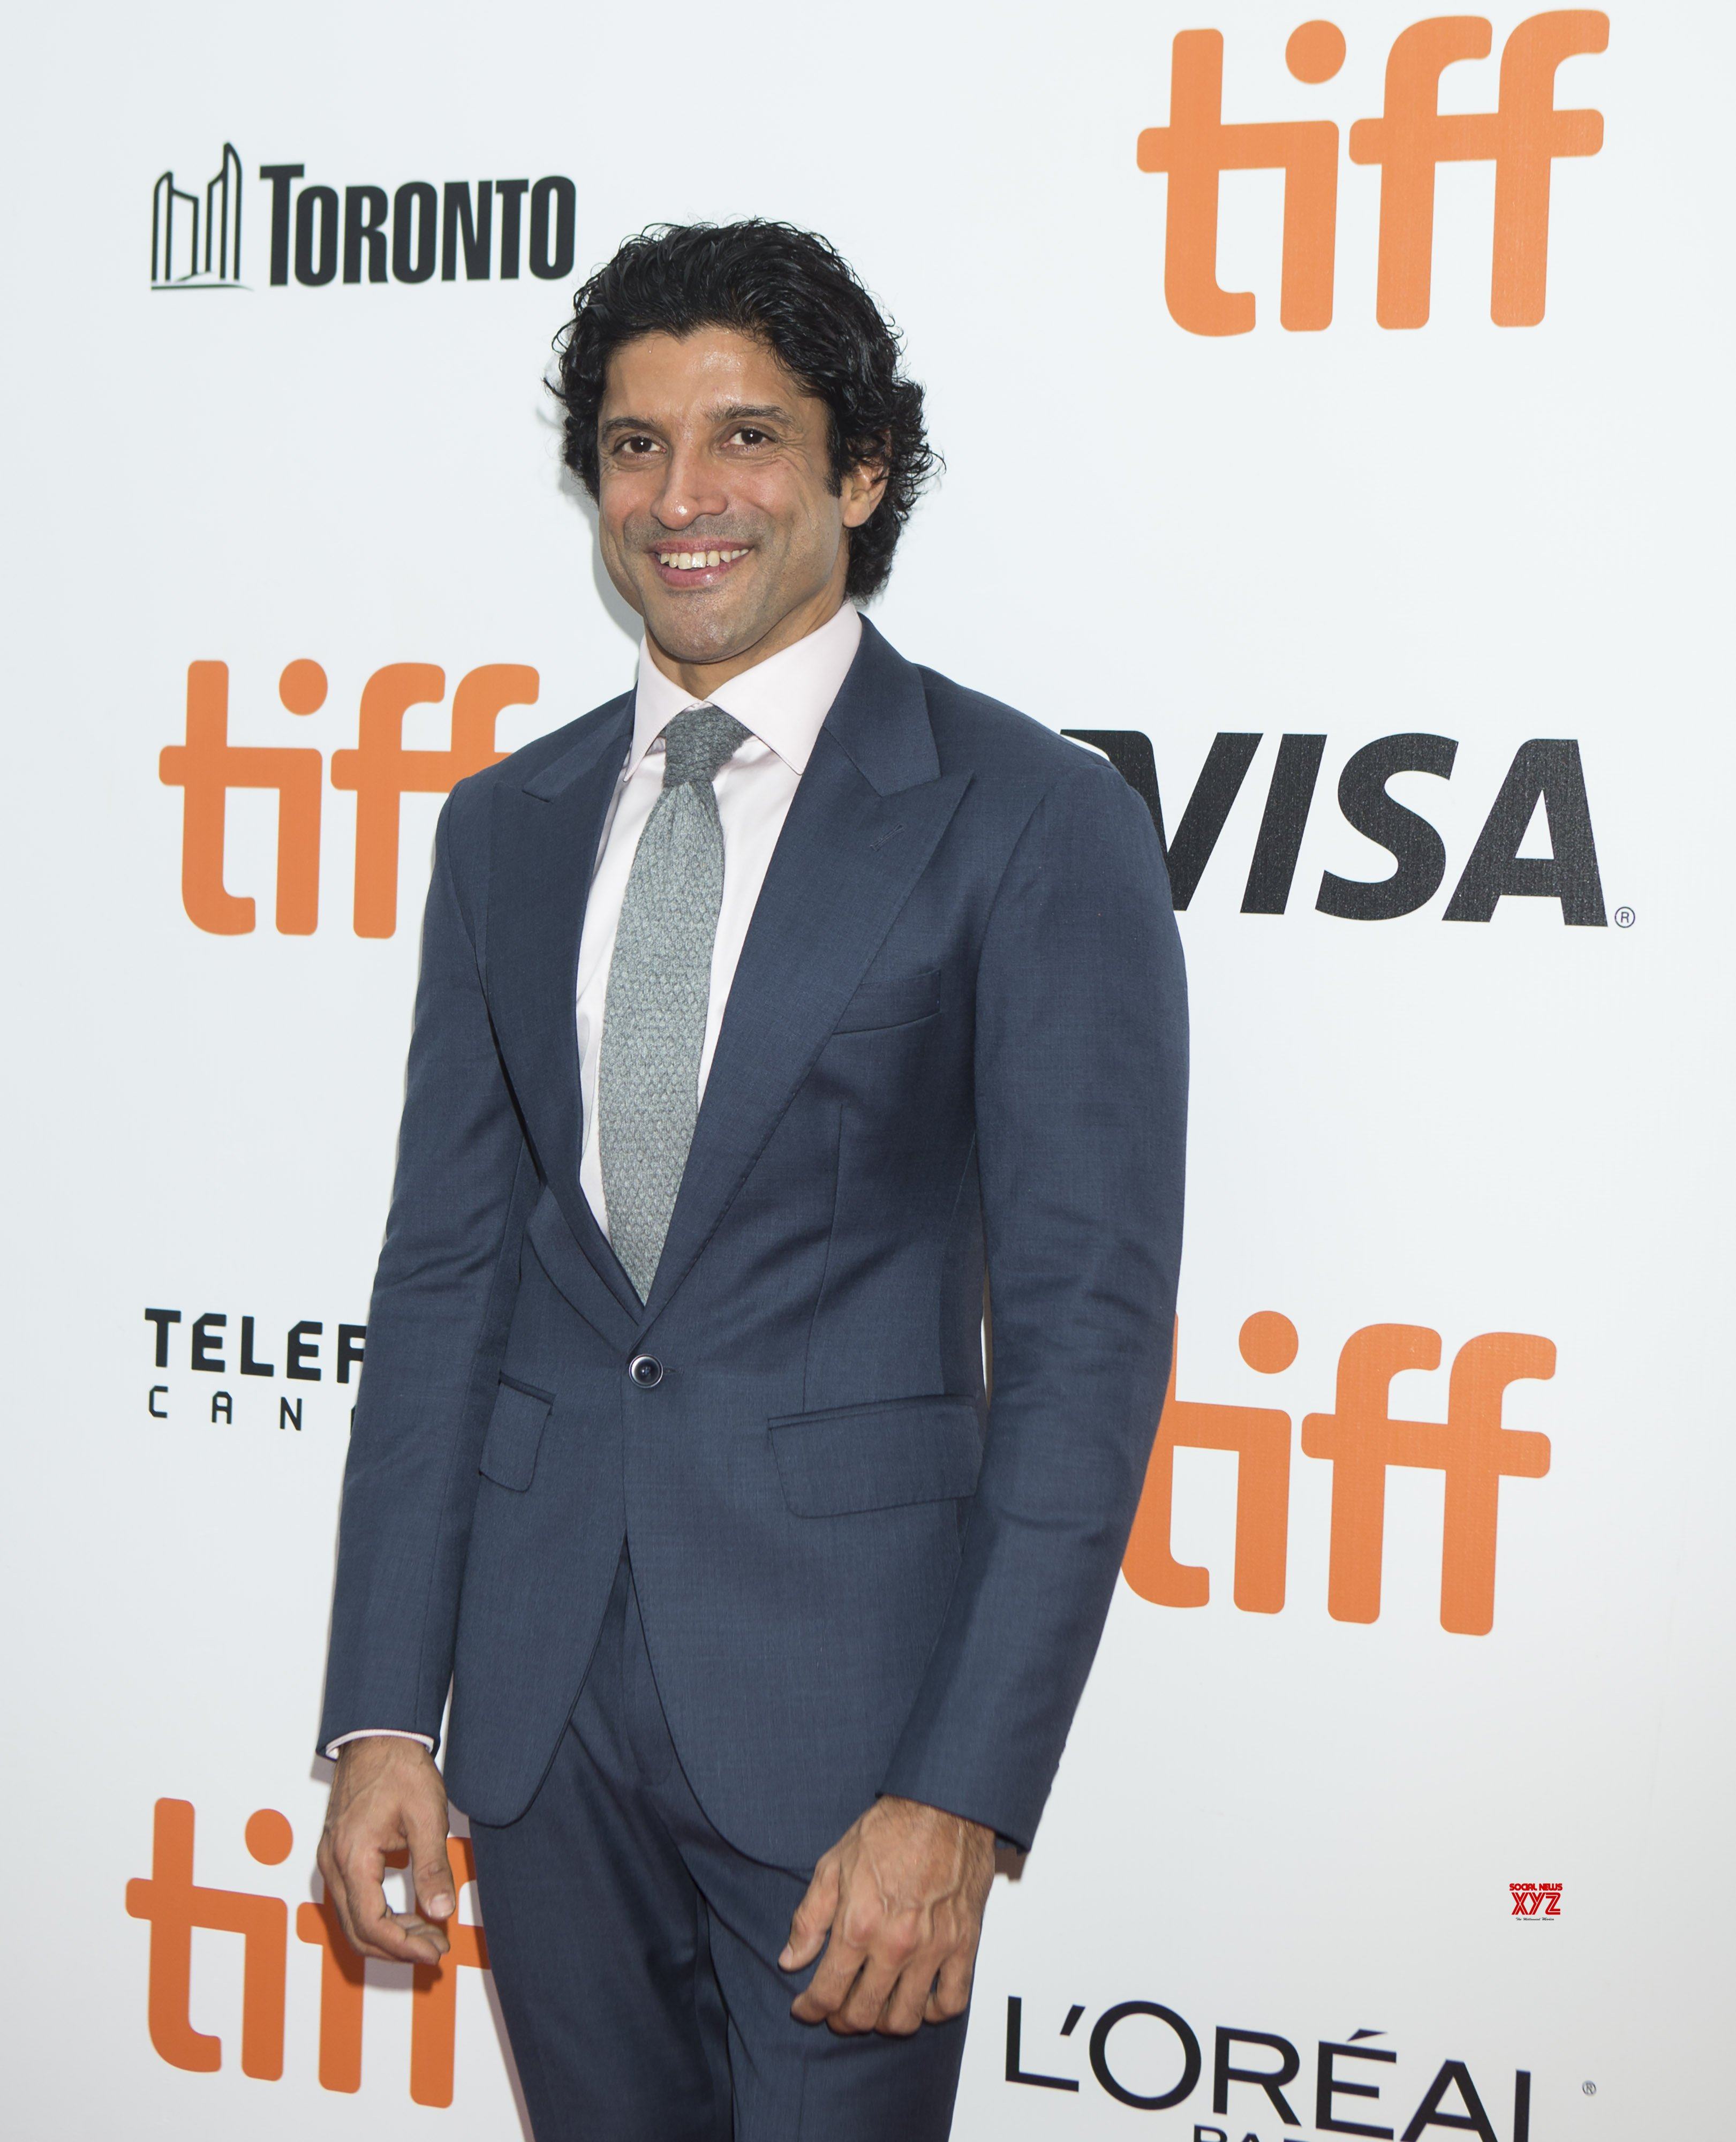 CANADA - TORONTO - TIFF - THE SKY IS PINK #Gallery